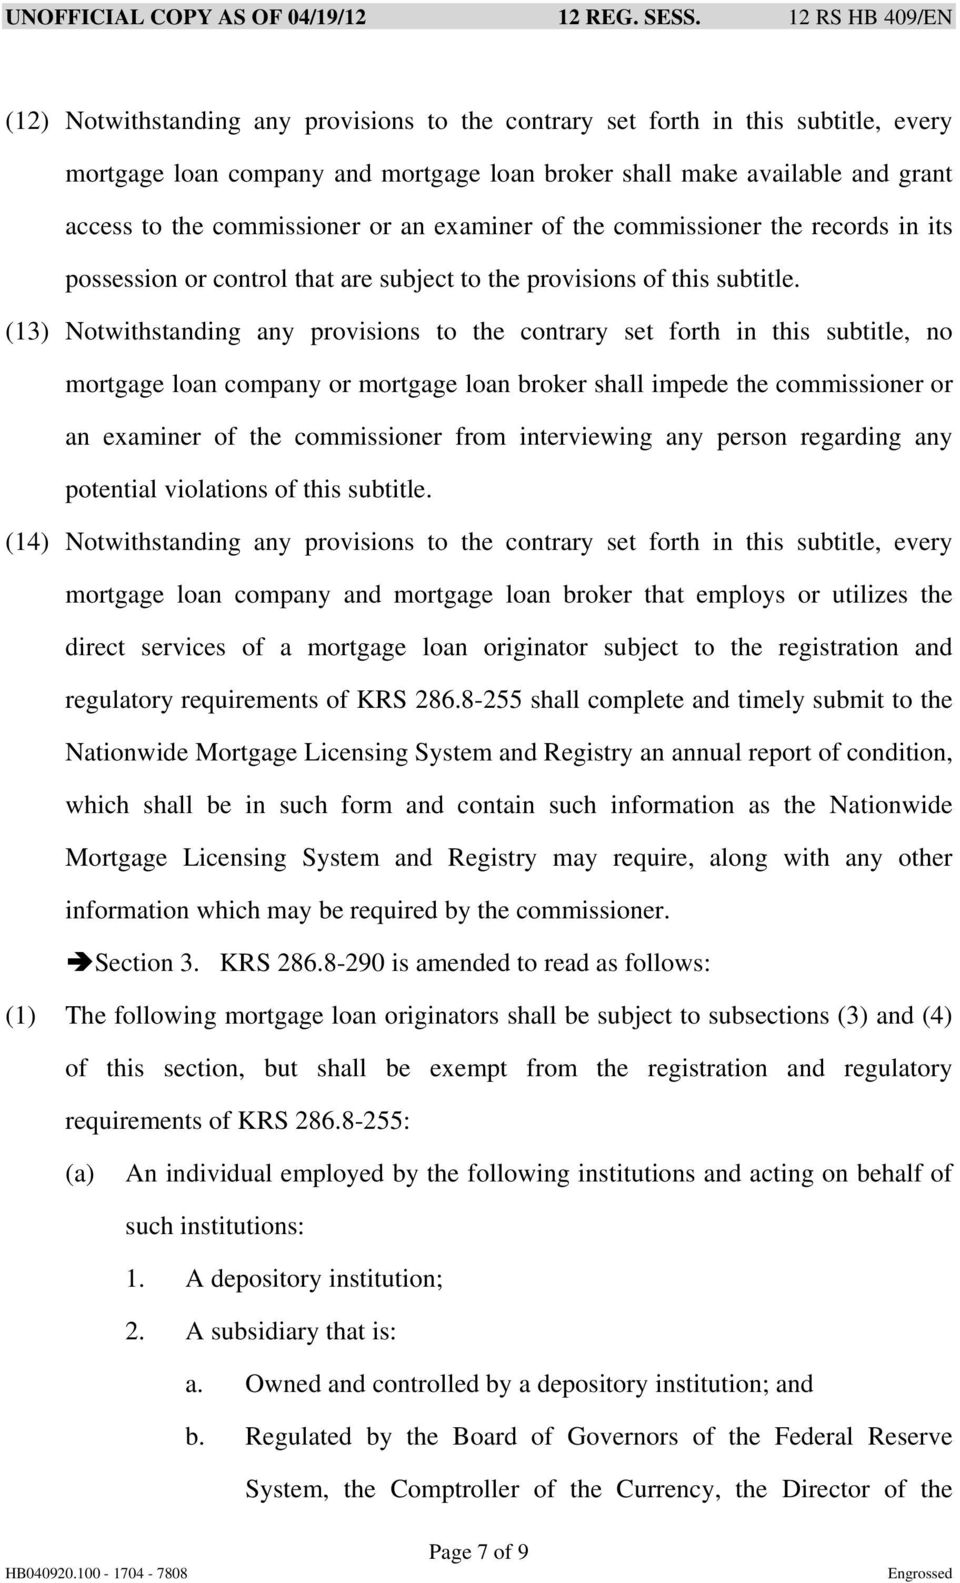 (13) Notwithstanding any provisions to the contrary set forth in this subtitle, no mortgage loan company or mortgage loan broker shall impede the commissioner or an examiner of the commissioner from